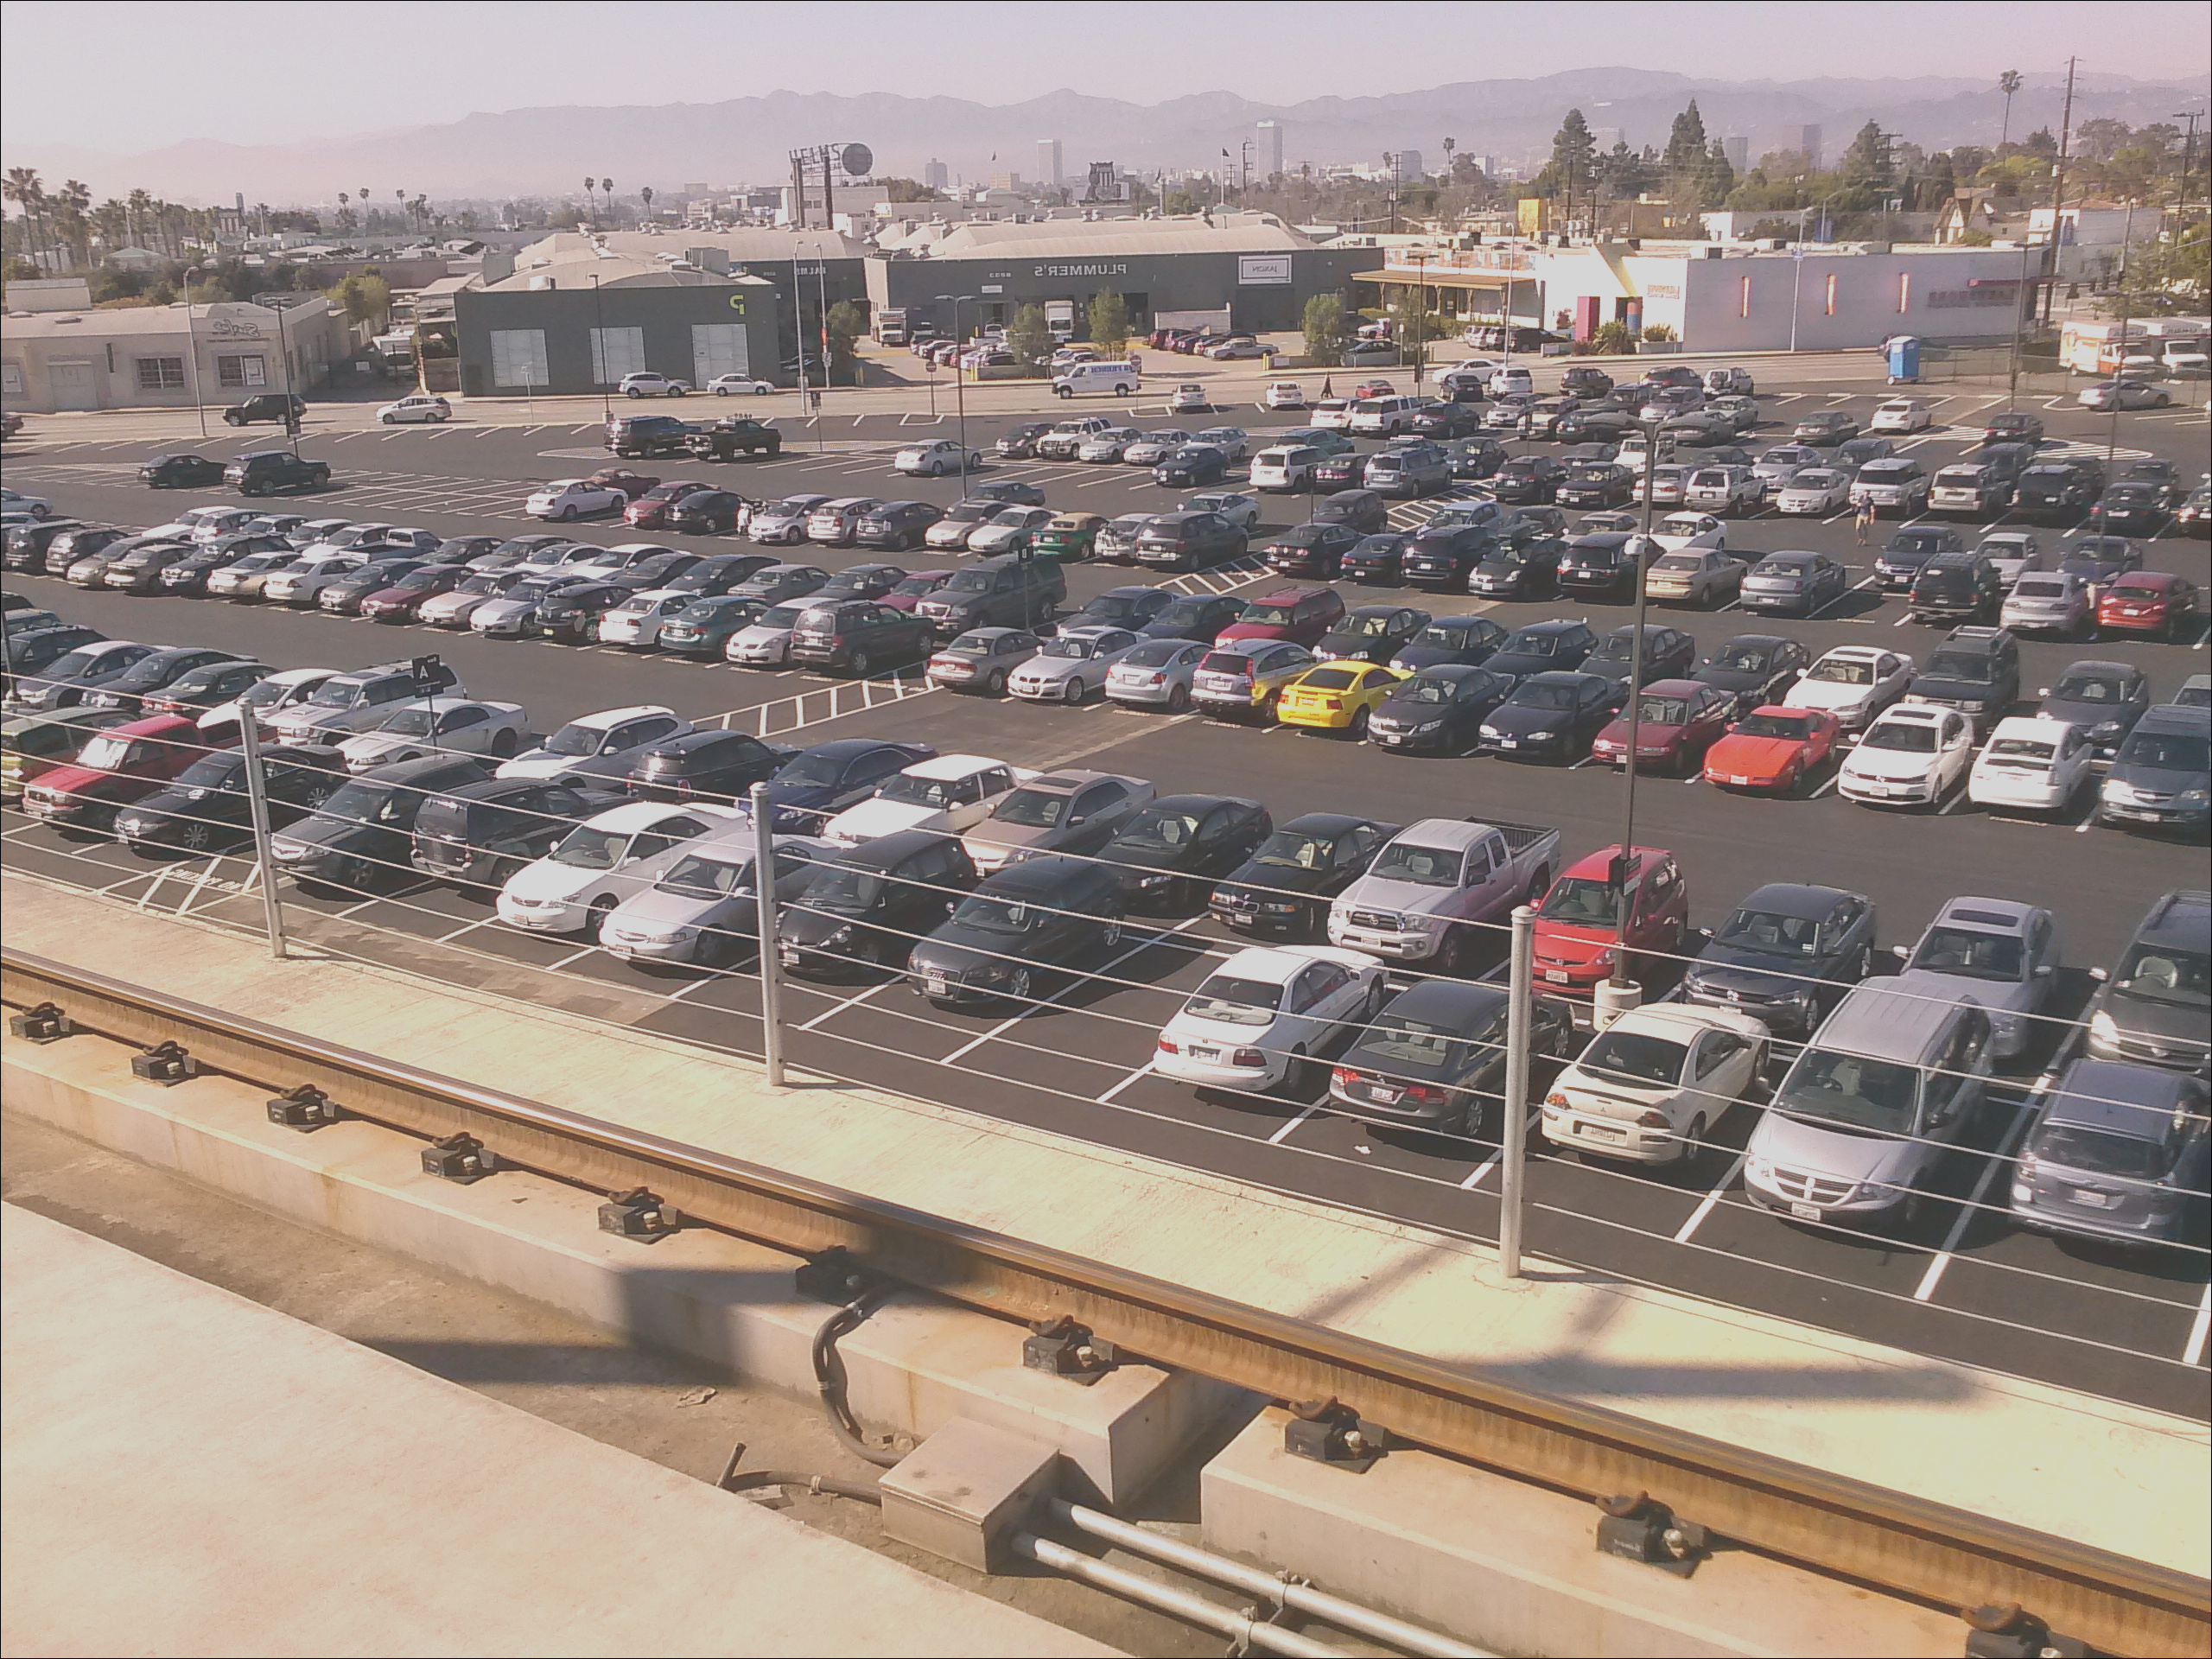 culver city station parking lot to close for construction of new development